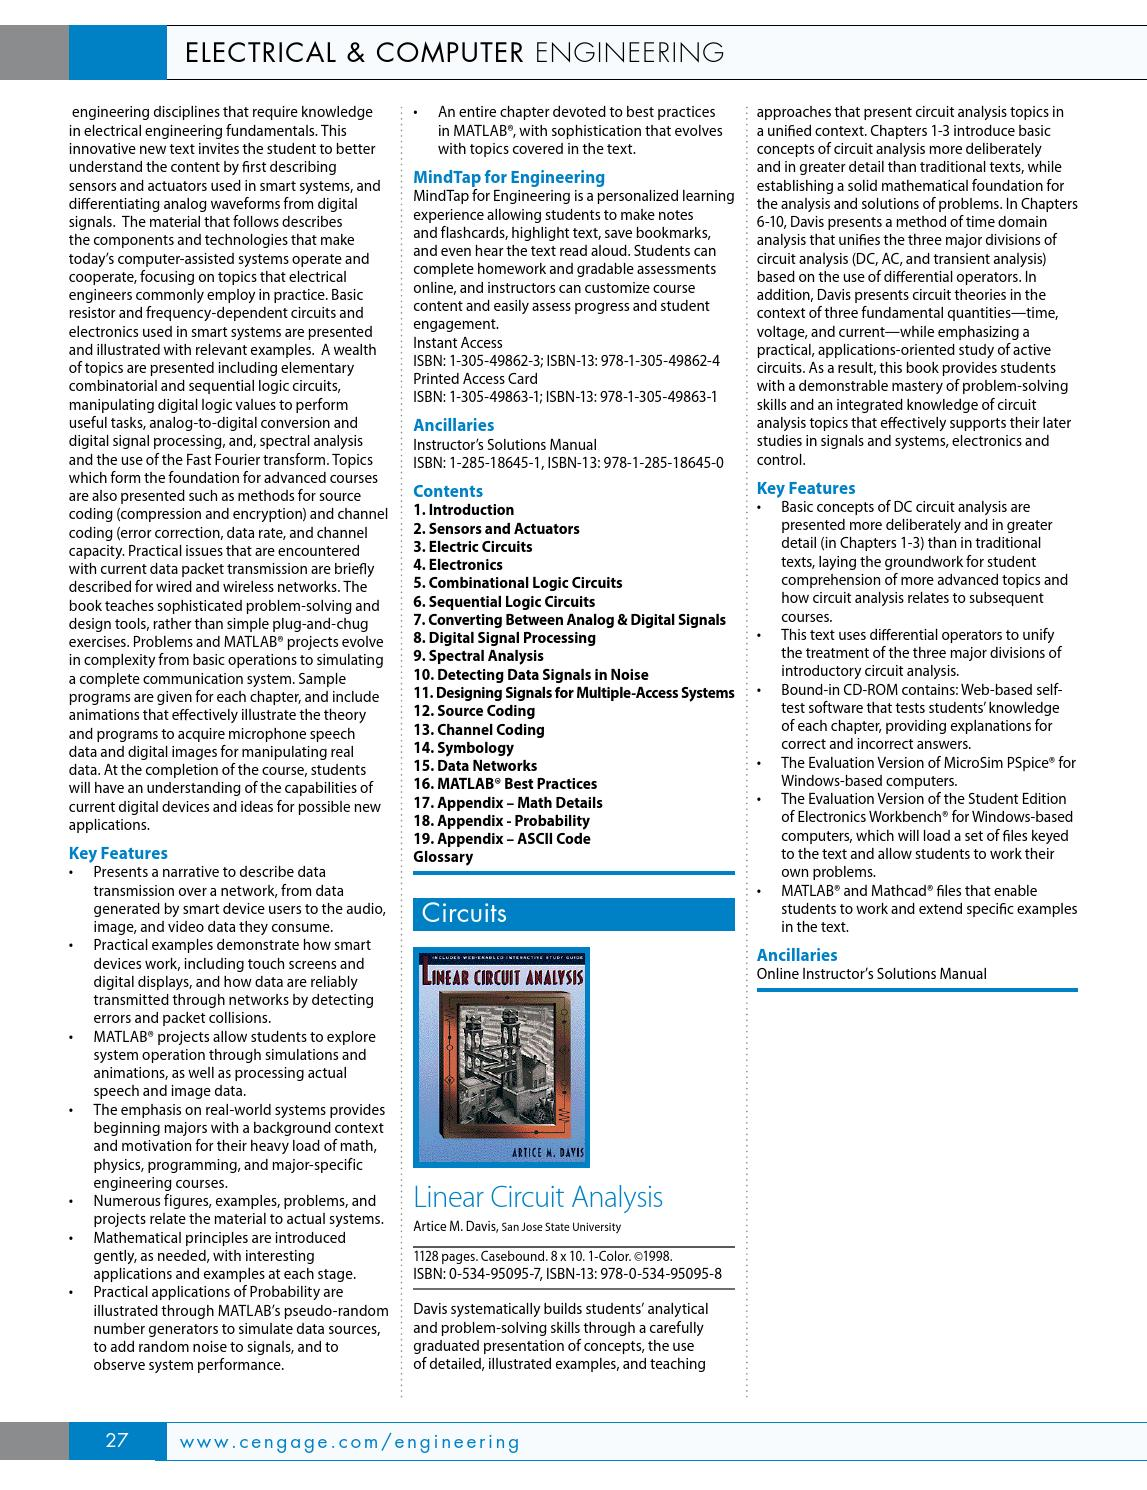 Cengage Learning Global Engineering 2015 Catalog By Cengage Learning Global Engineering Issuu